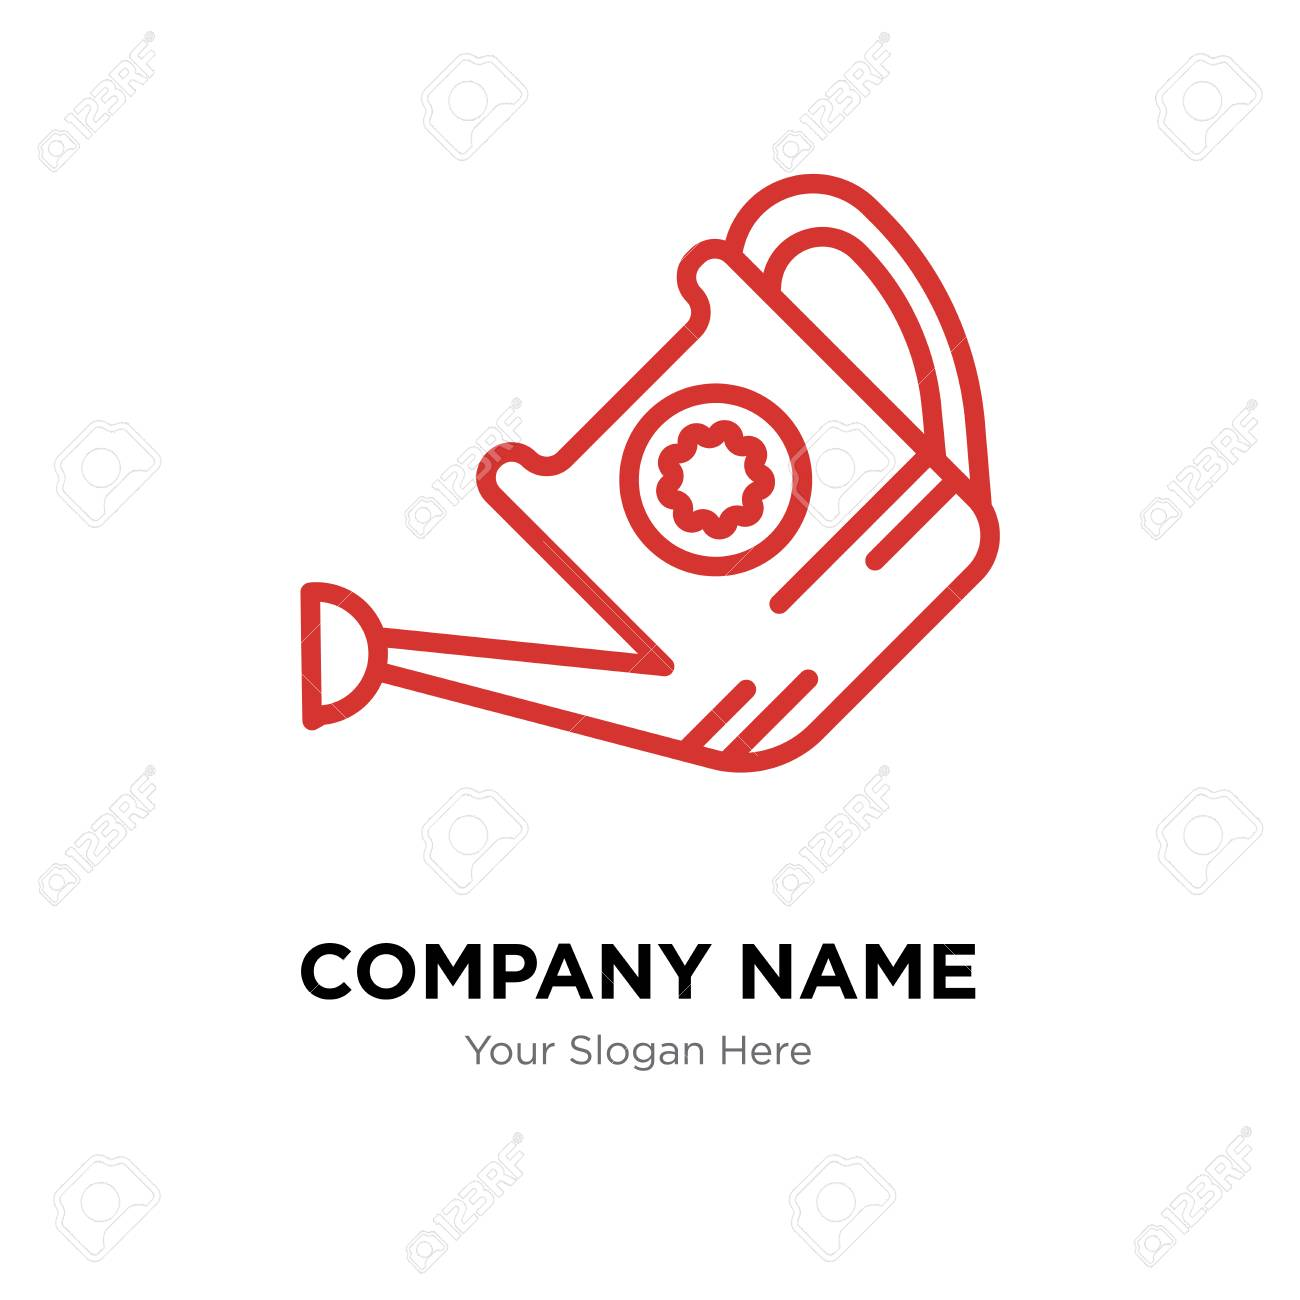 watering can company logo design template watering can logotype